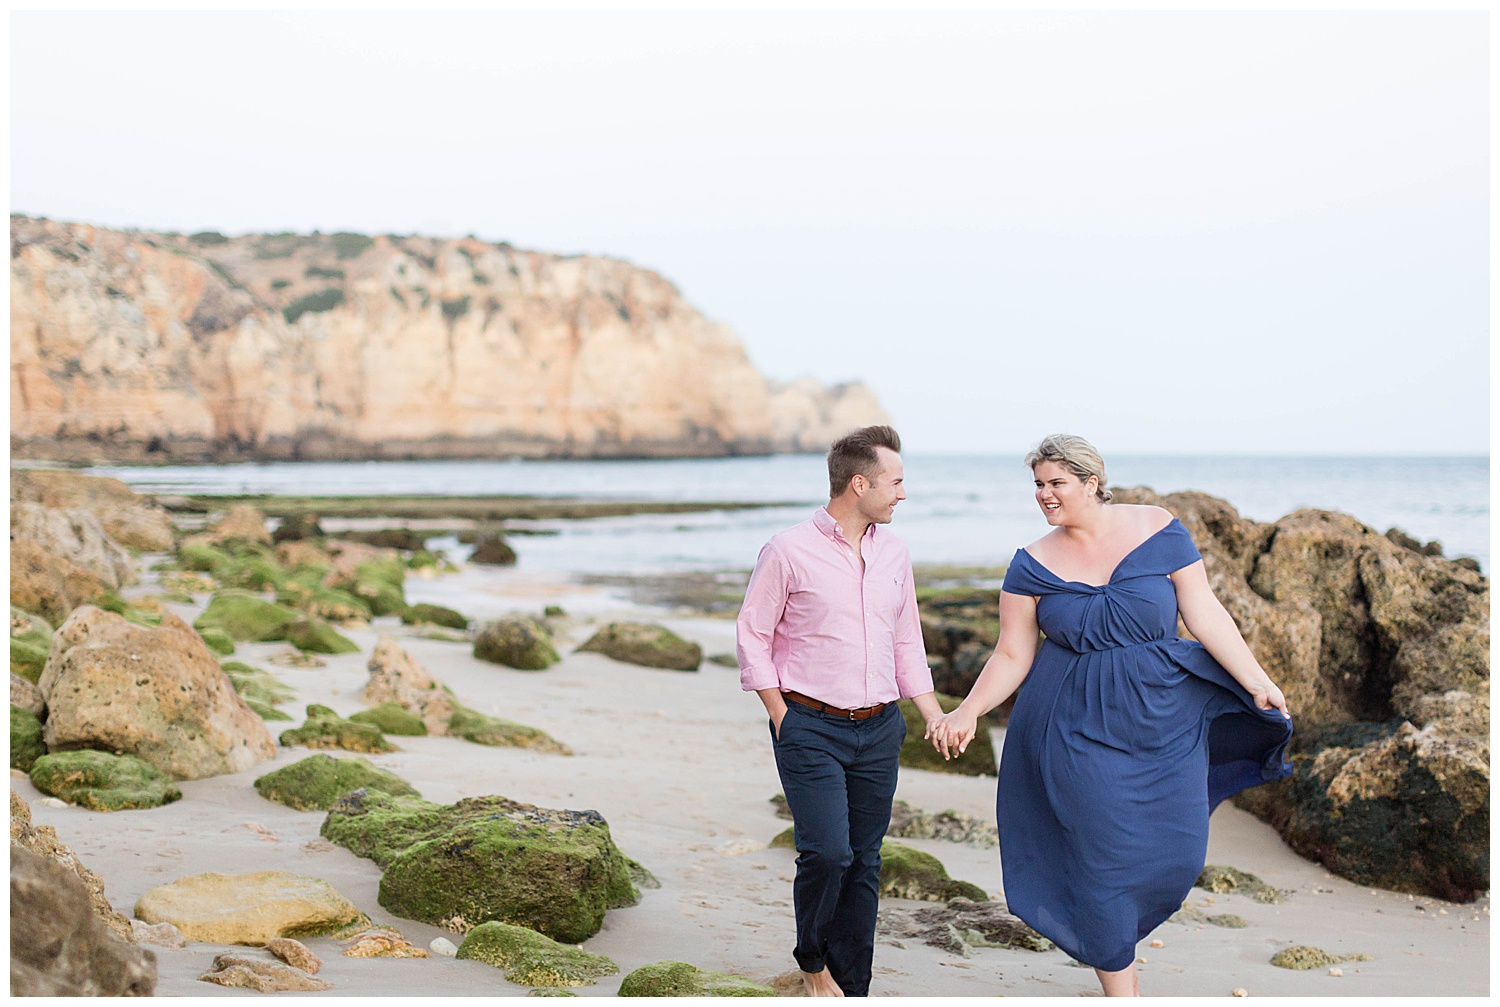 portugal-engagement-emily-belson-photography-20.jpg